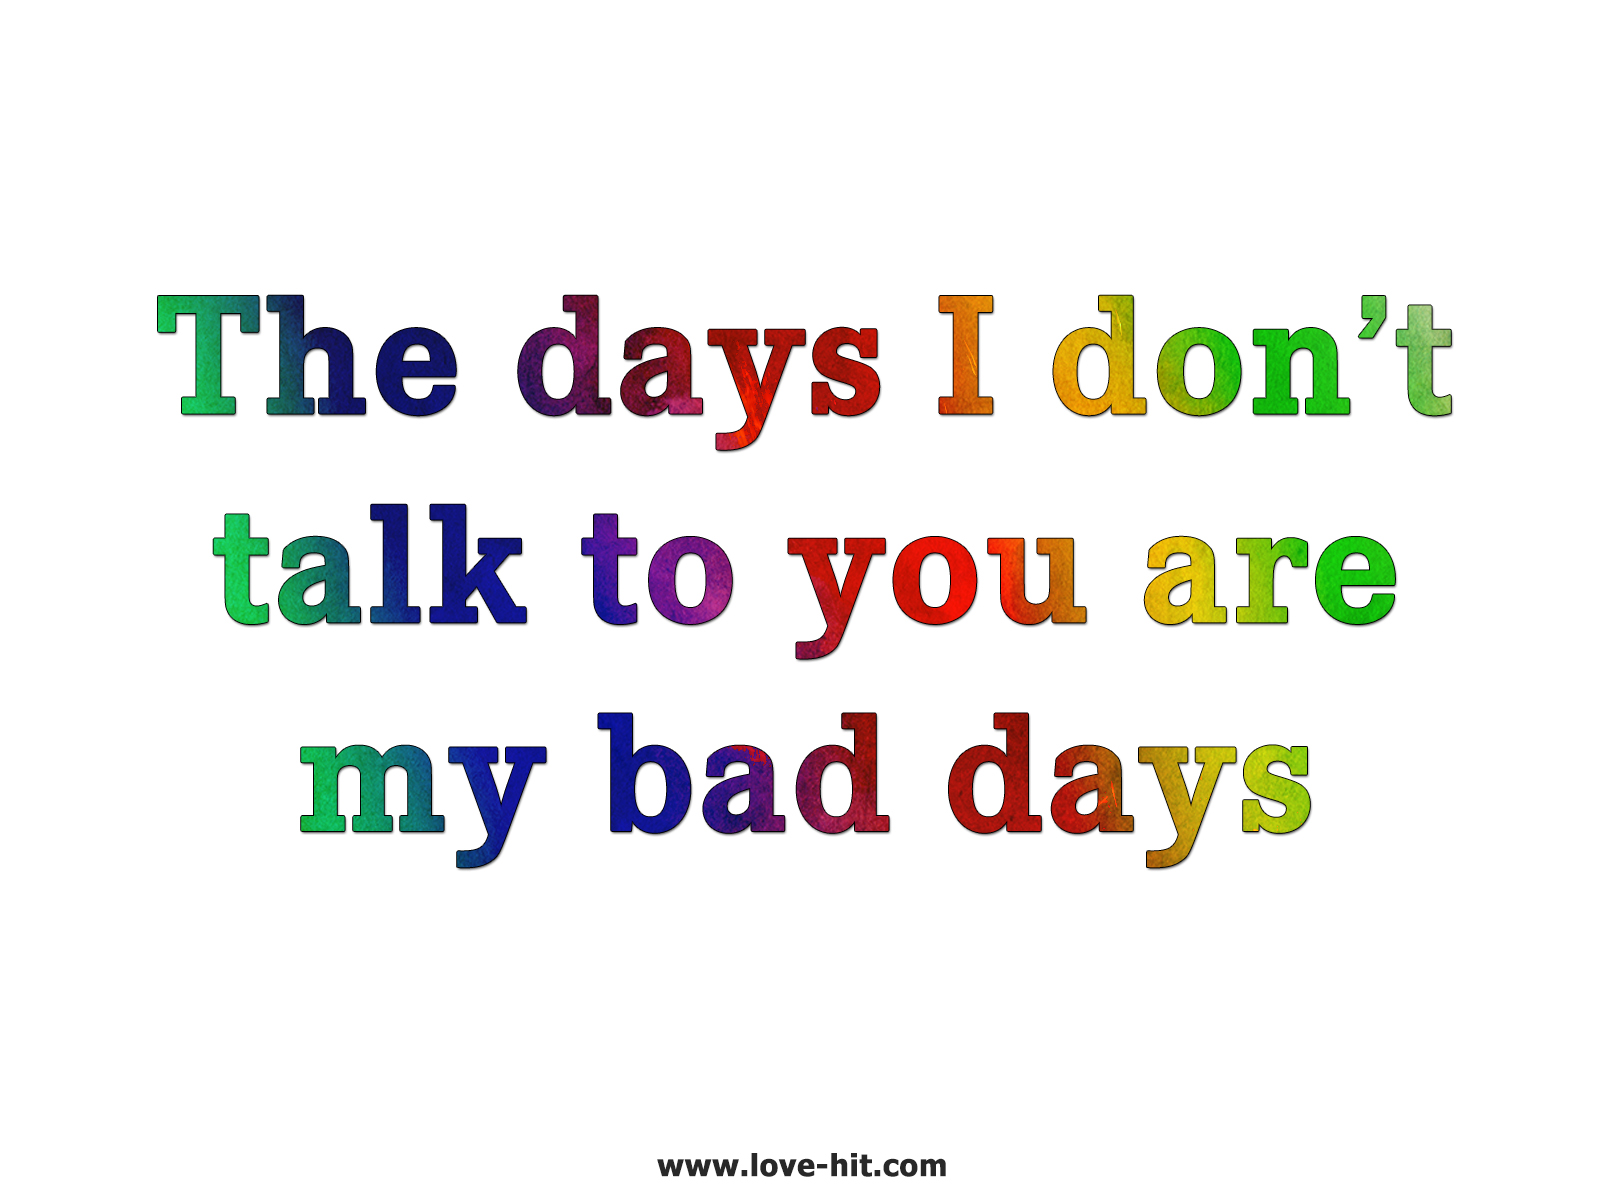 The days I don't talk to you are my bad days